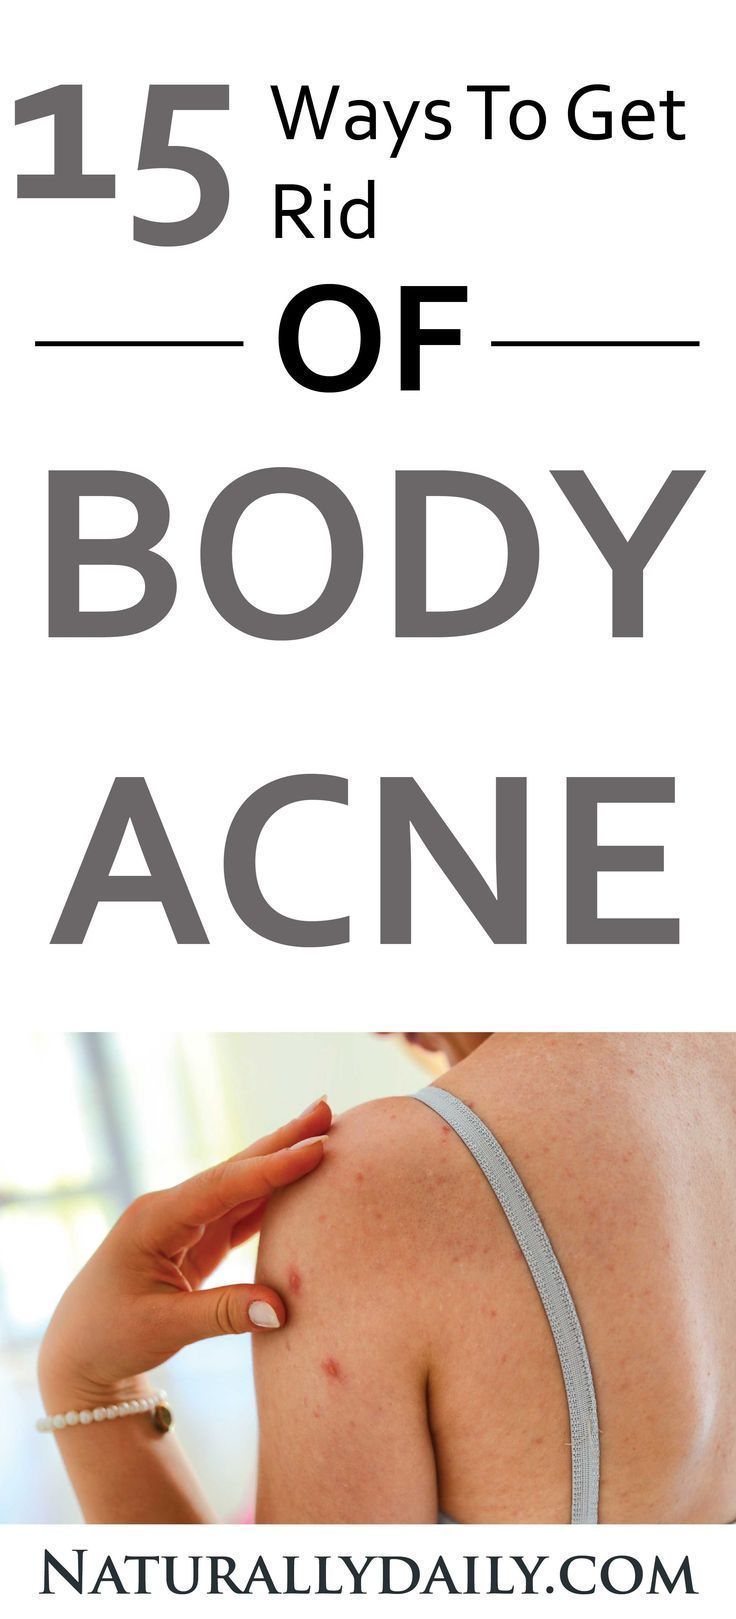 If you want to get rid of acne then you should not